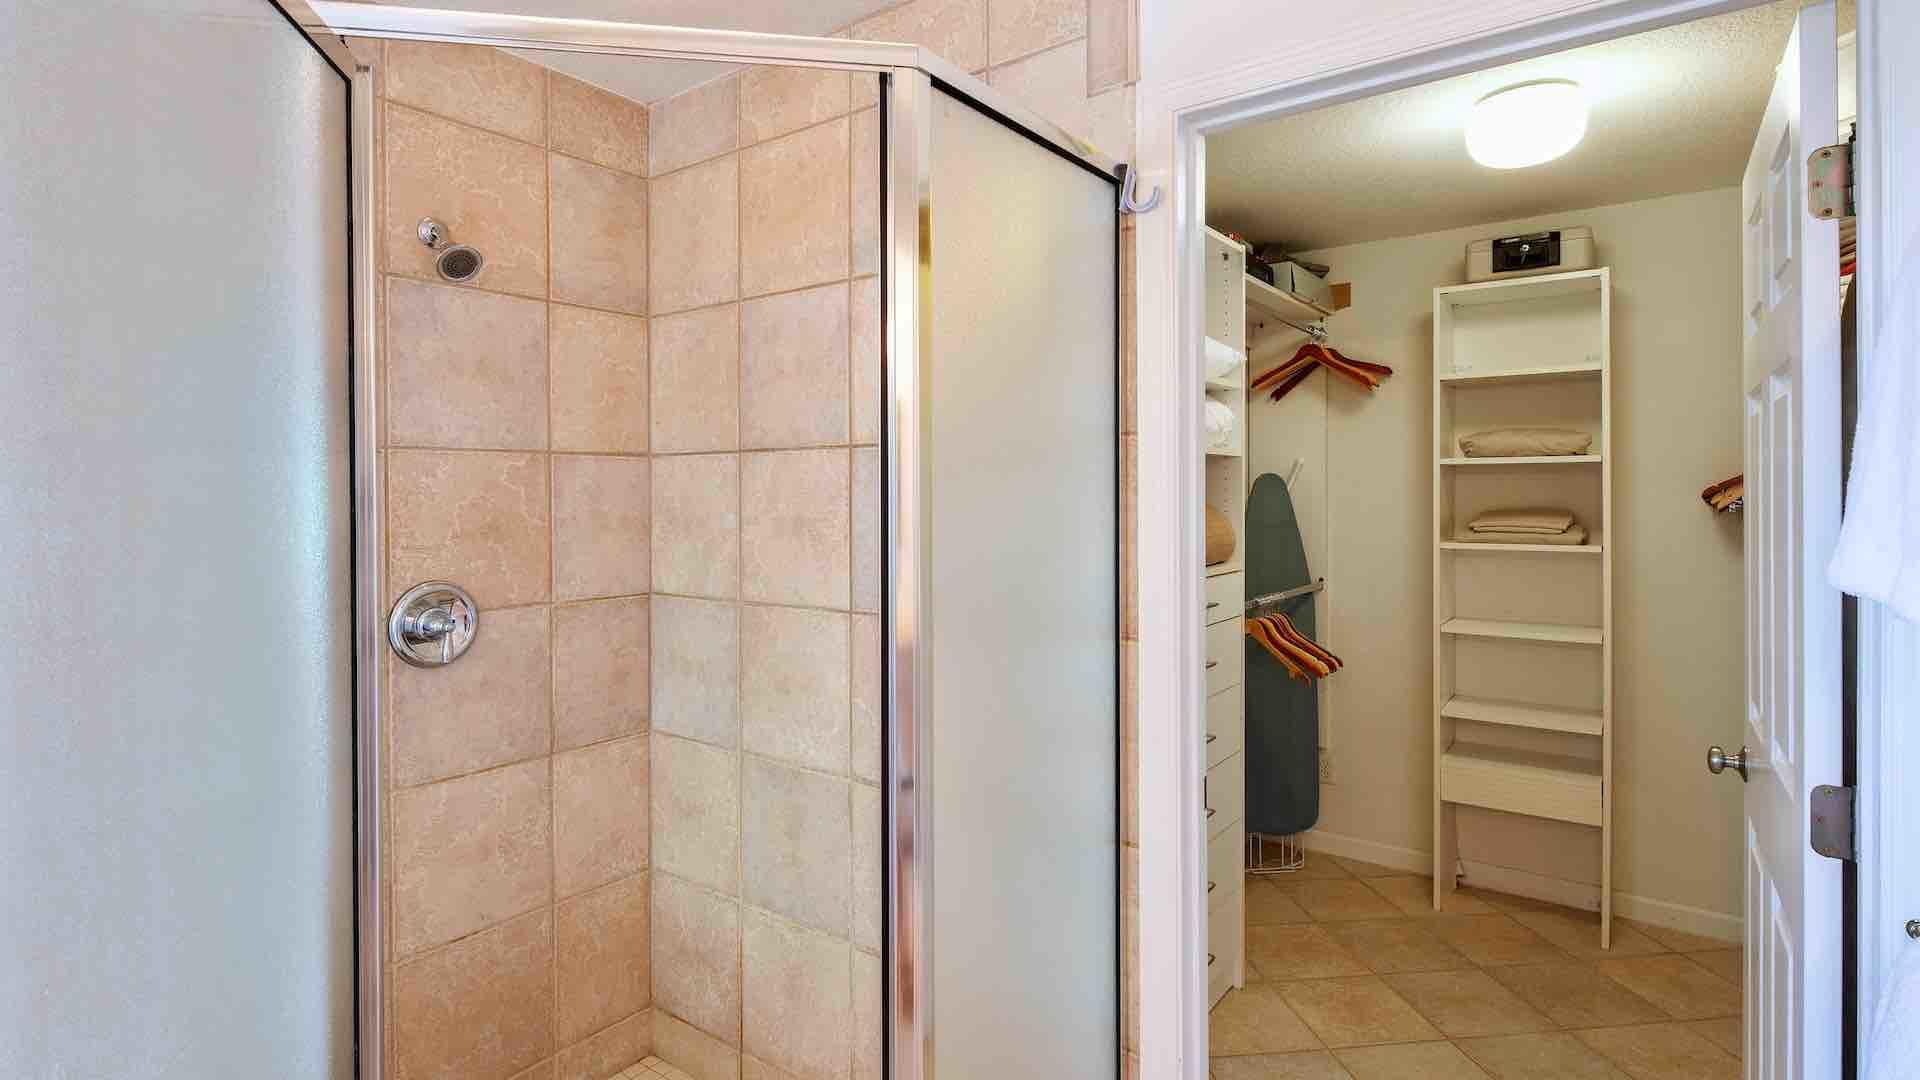 There's a large walk-in closet off the master bathroom...